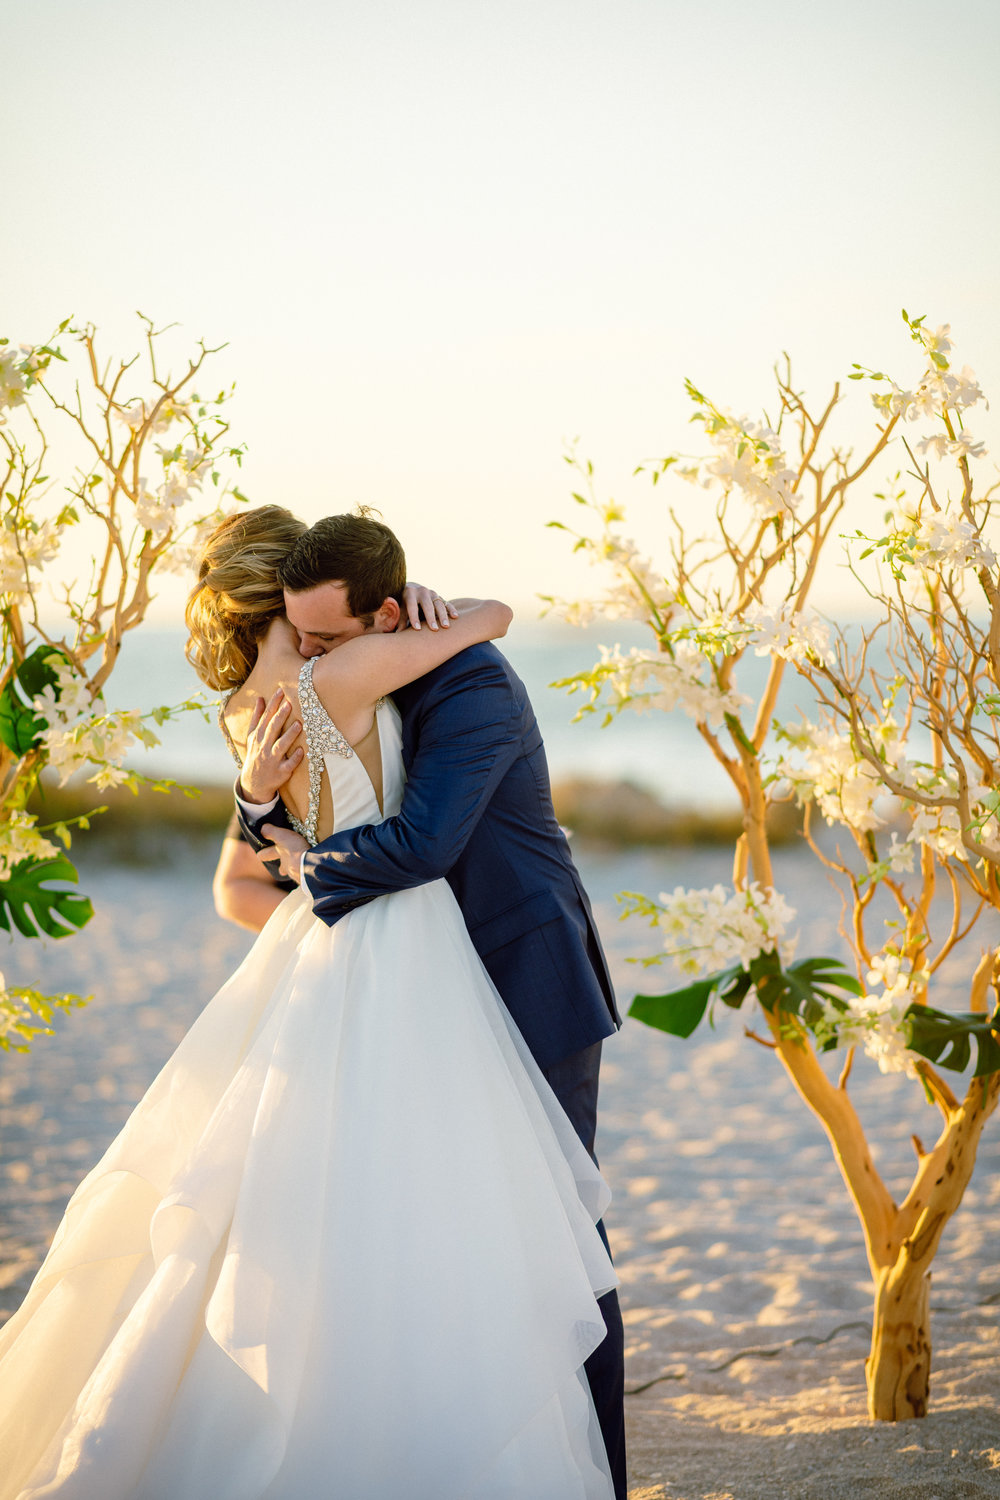 Romantic beach wedding photographer.jpg